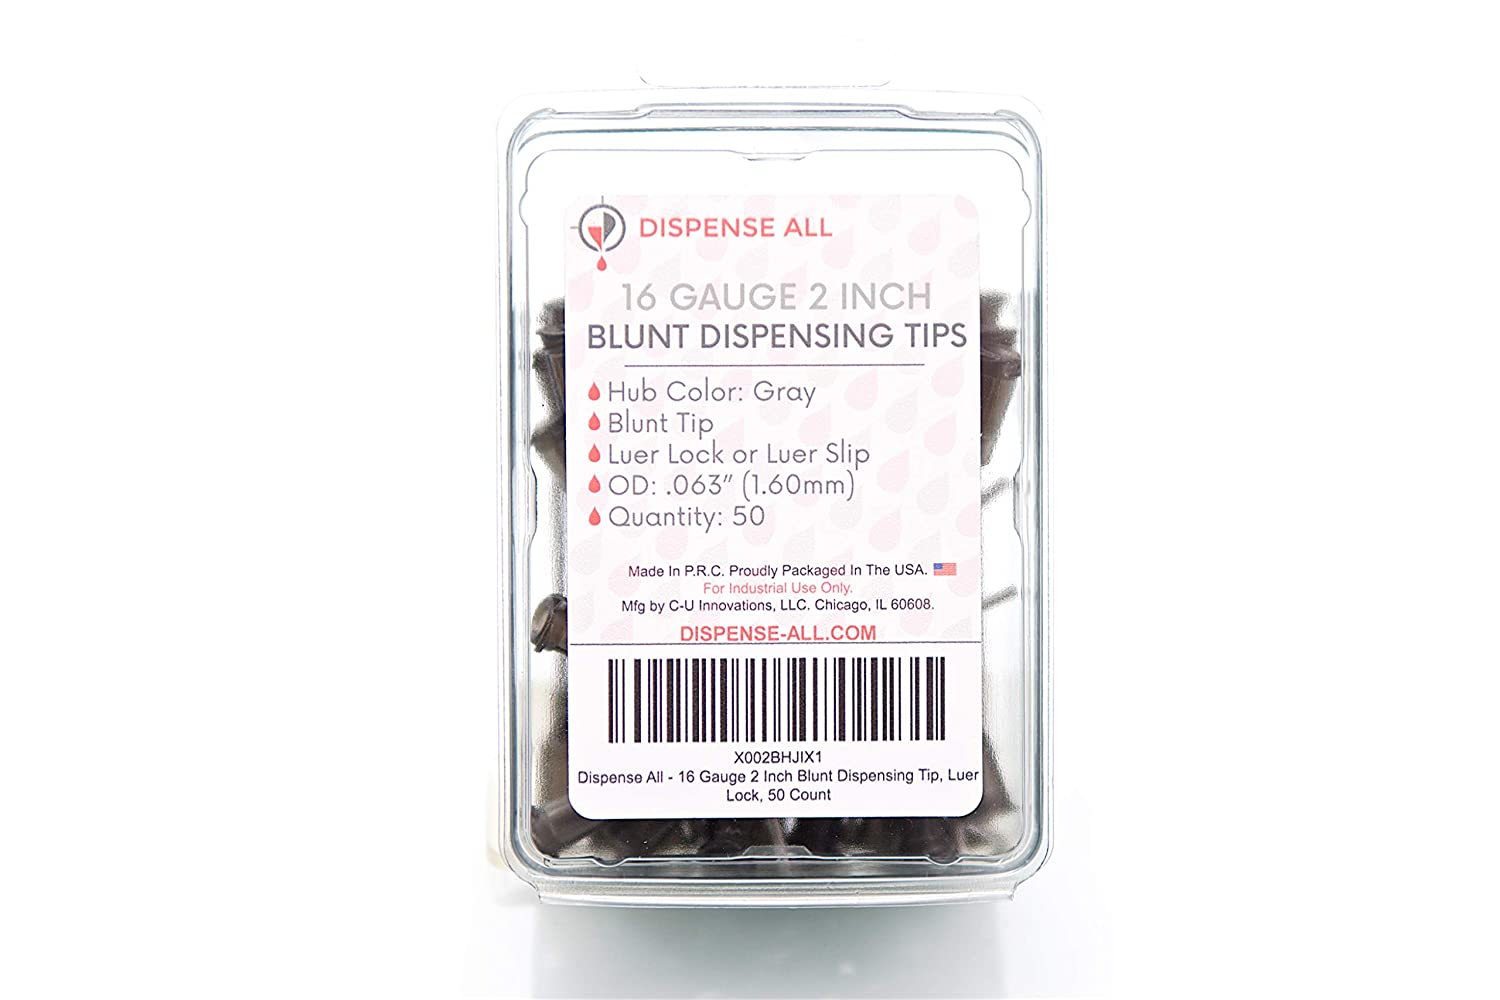 Dispense All - 16 Gauge 2 Inch Blunt Dispensing Tip, Luer Lock, 50 Count